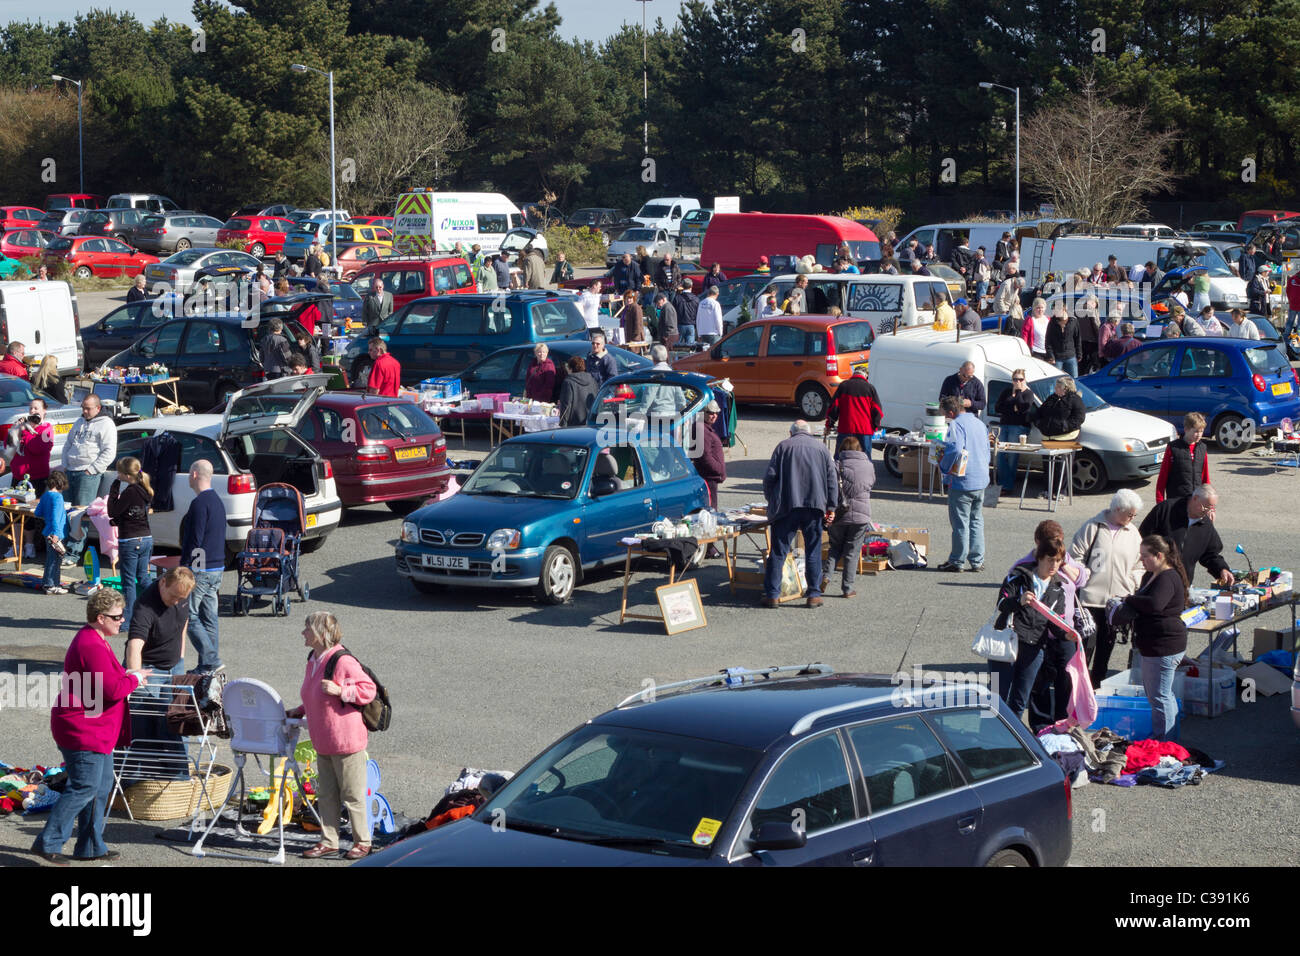 A Car Boot Sale At The Carn Brea Leisure Centre Car Park In Pool